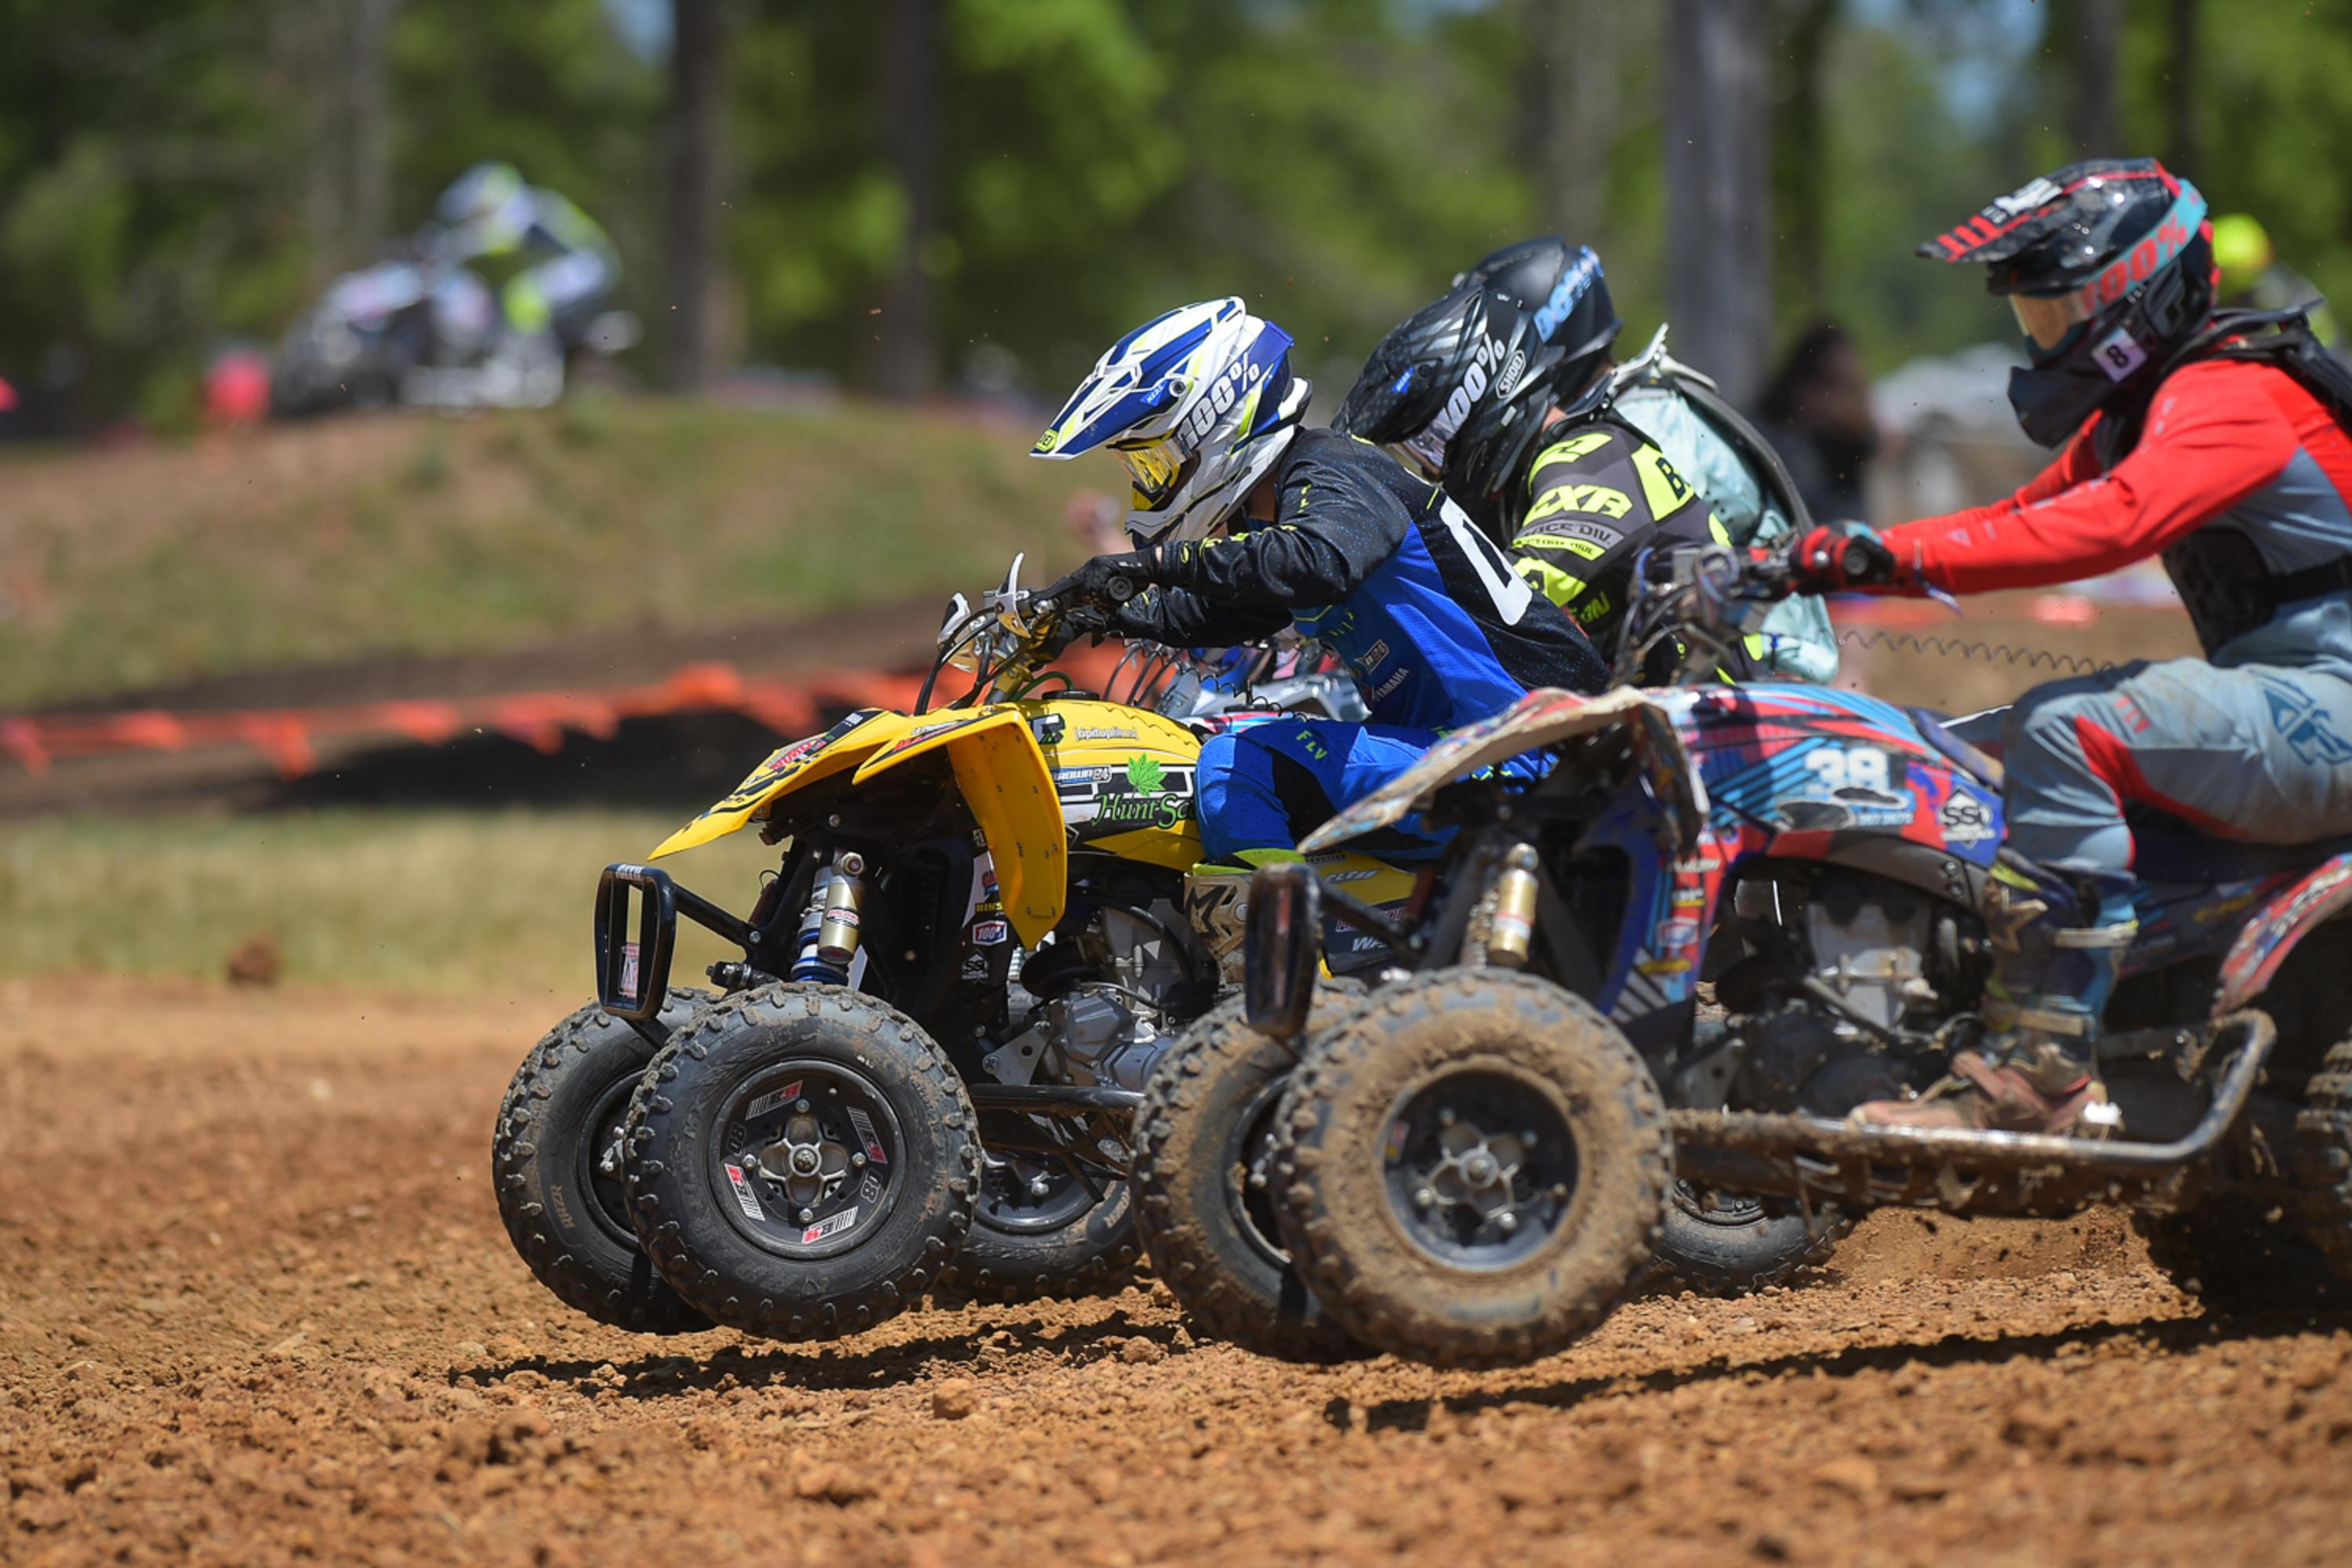 RLT Competition Bulletin 2020-16: Updates to Pro Motocross and ATVMX Schedules – ATV Motocross